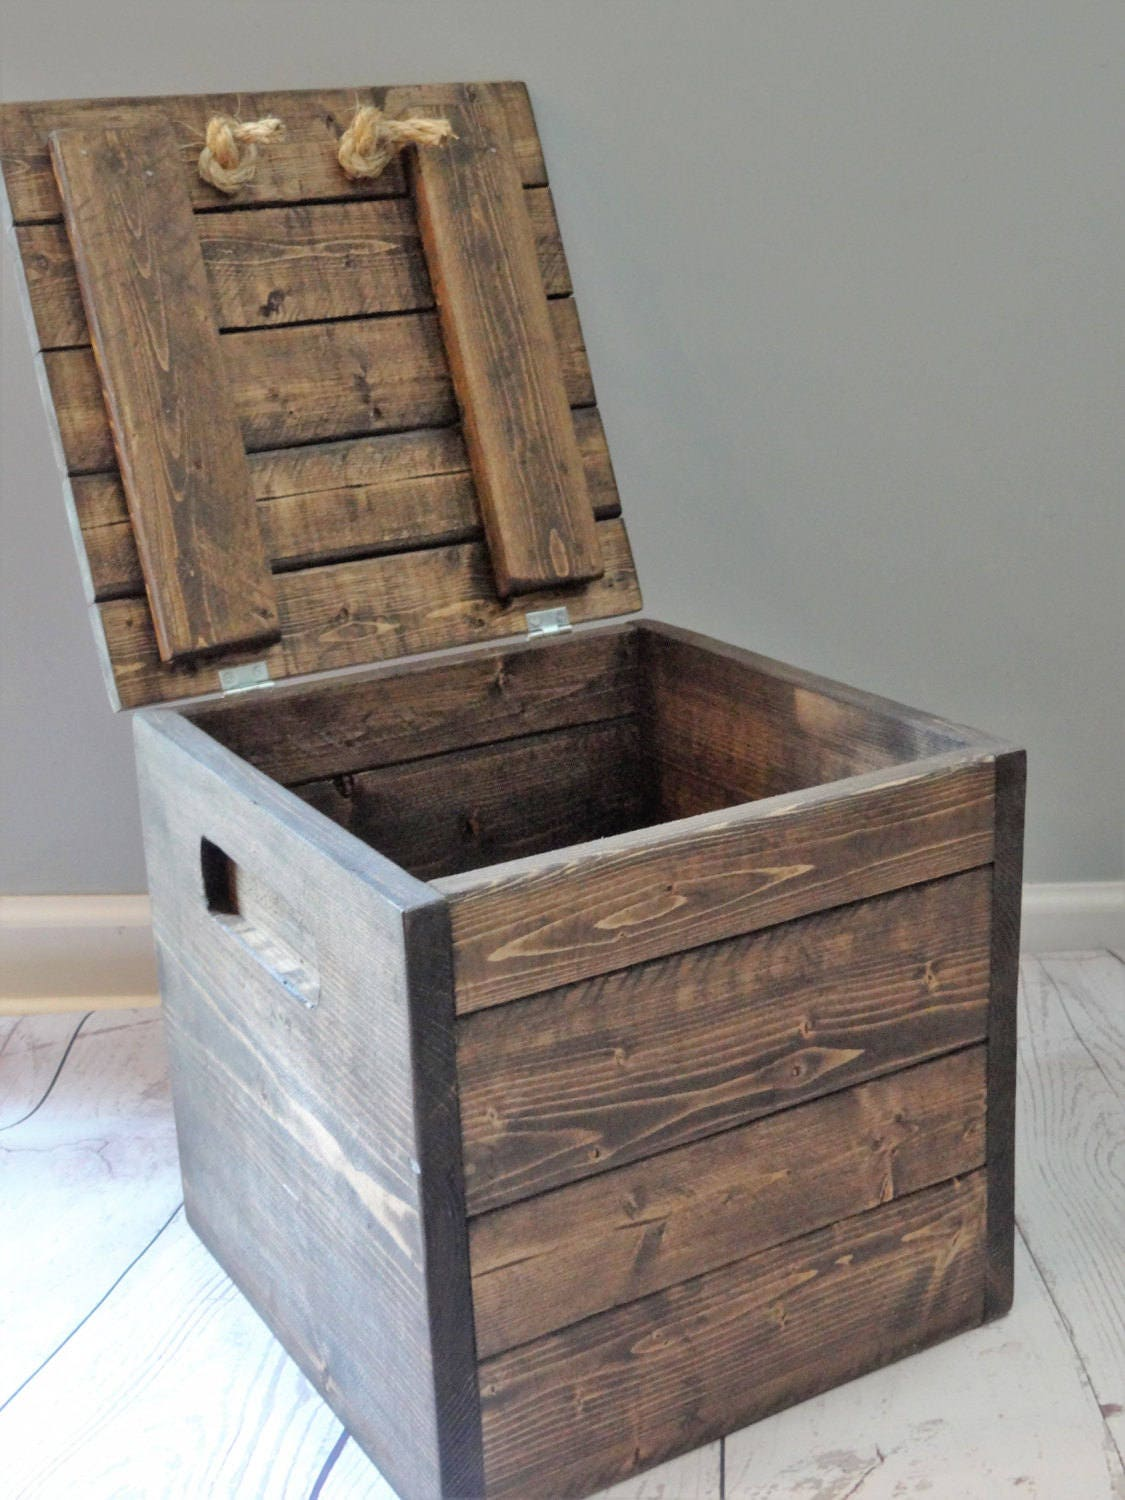 Square Wooden Box / Storage / Gift / Personalized / Toy Storage / Craft  Storage / Storage Bin / 12x12x12 / Small Wood Box / Gifts For Him